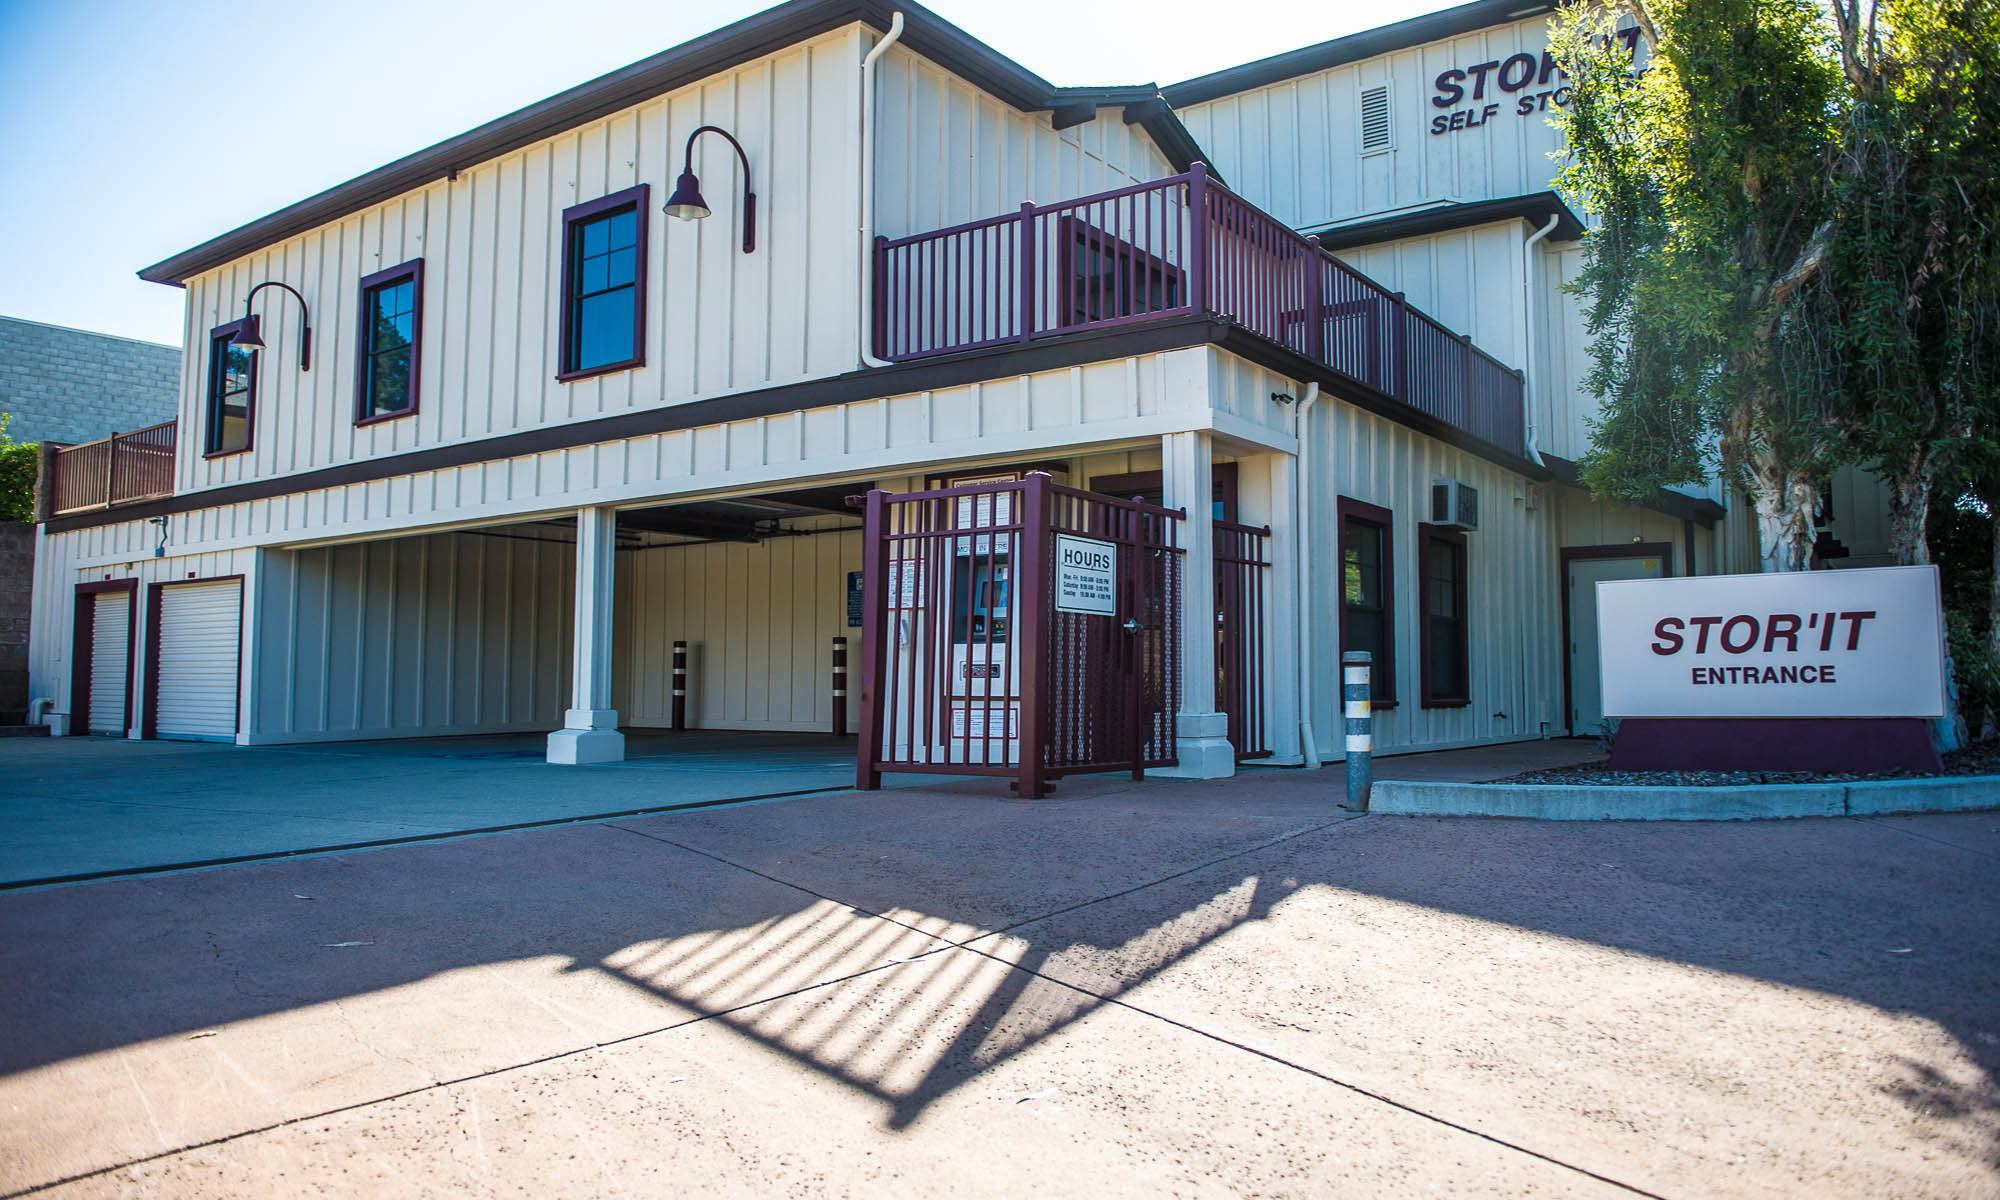 Self storage in Los Gatos, California